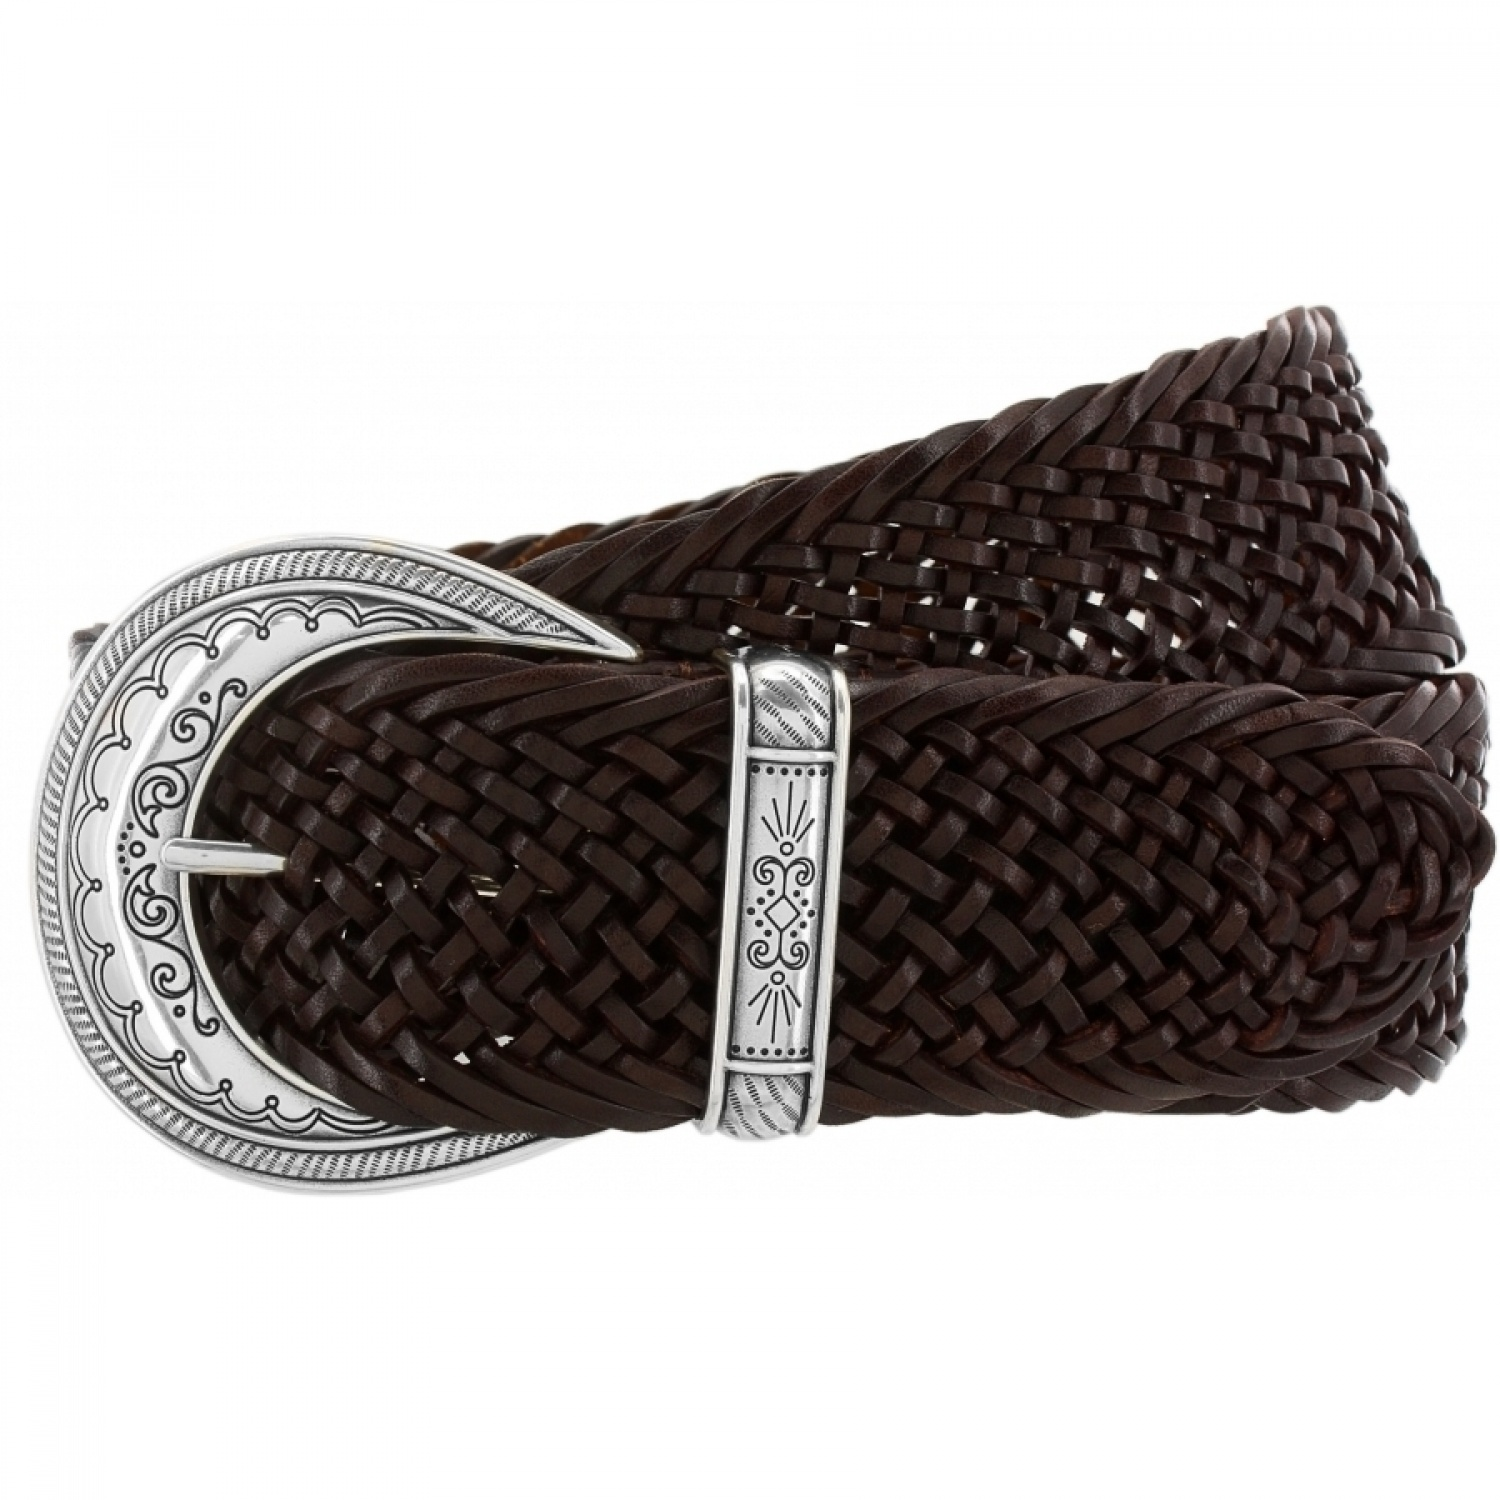 This stylish men's braided leather belt with an antiqued-brass-finish buckle pairs well with dressy and casual pants.